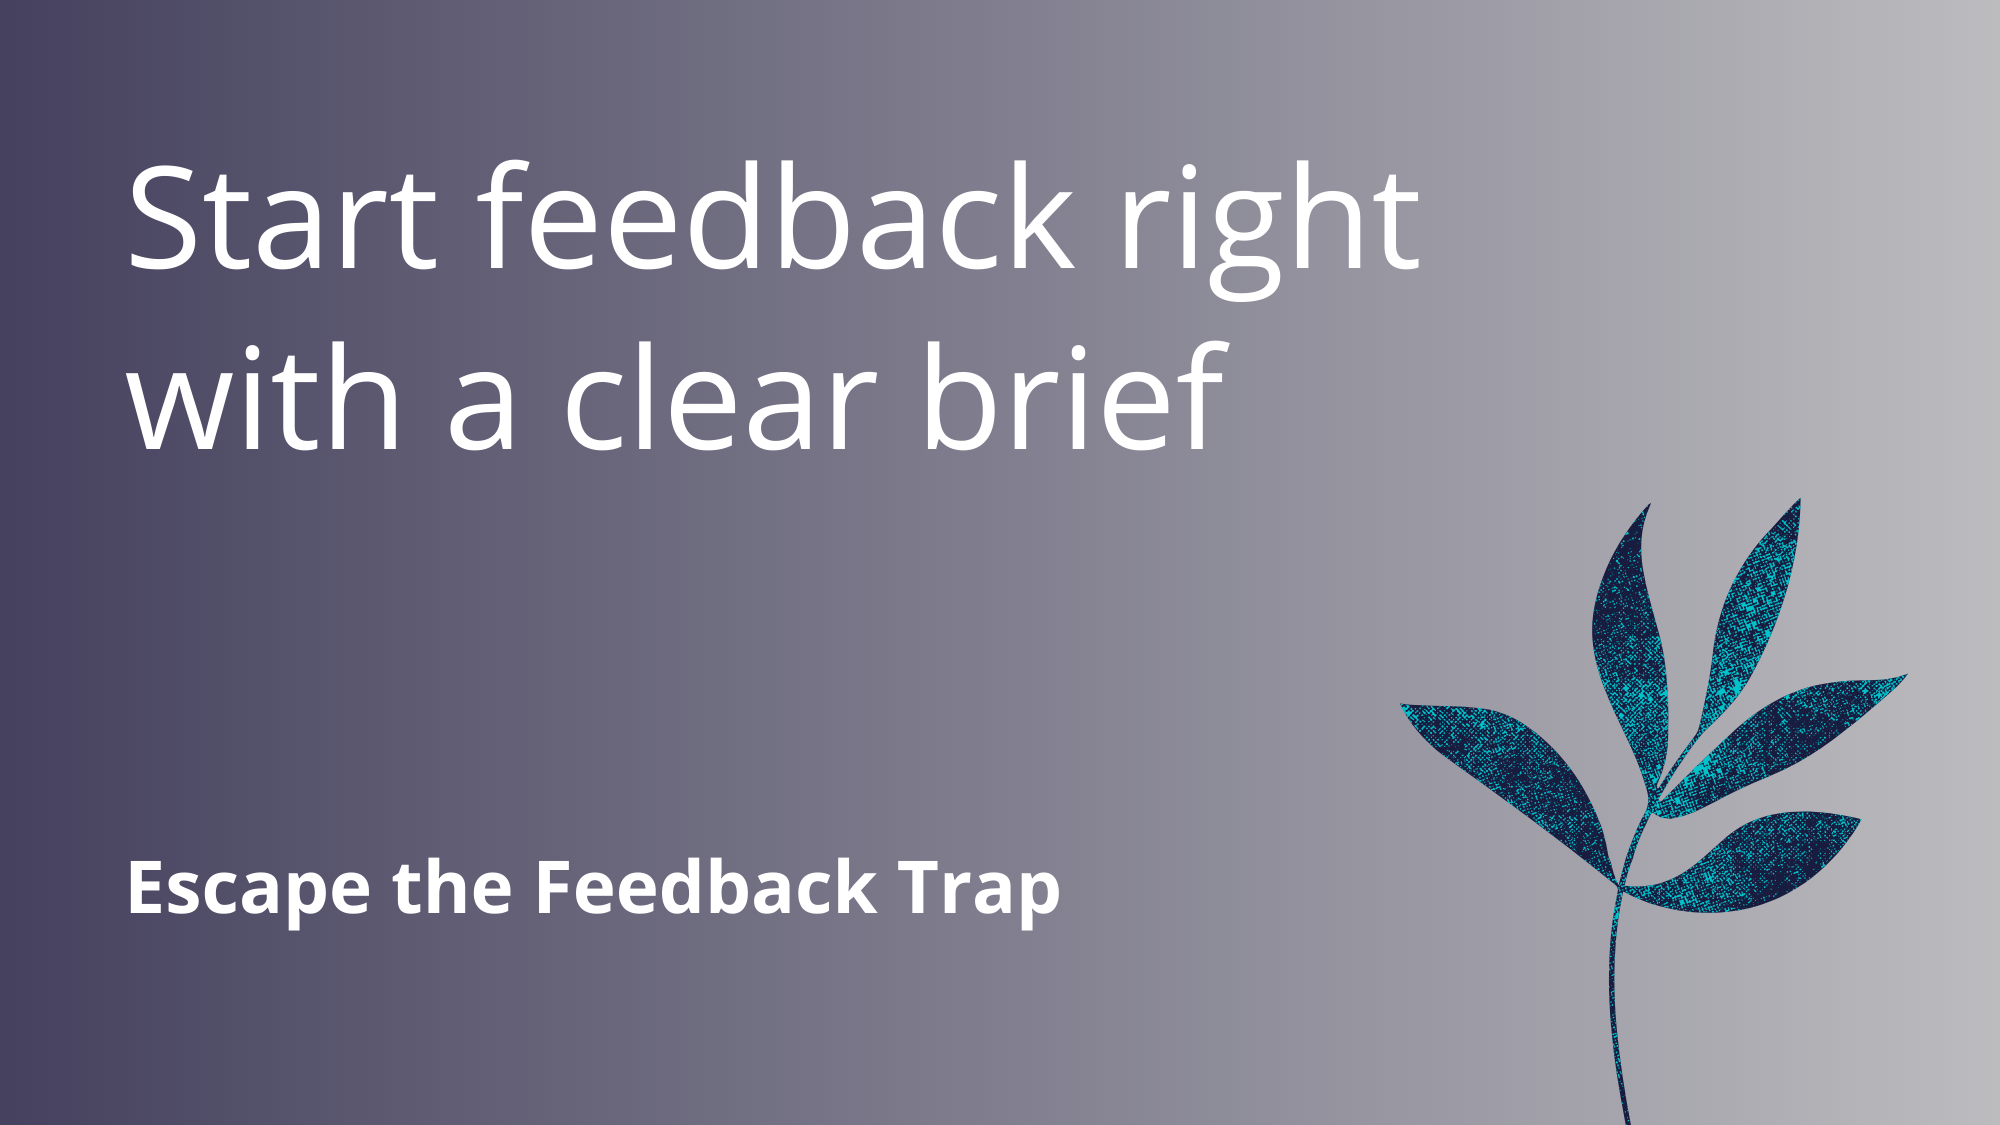 Start feedback right with a clear brief